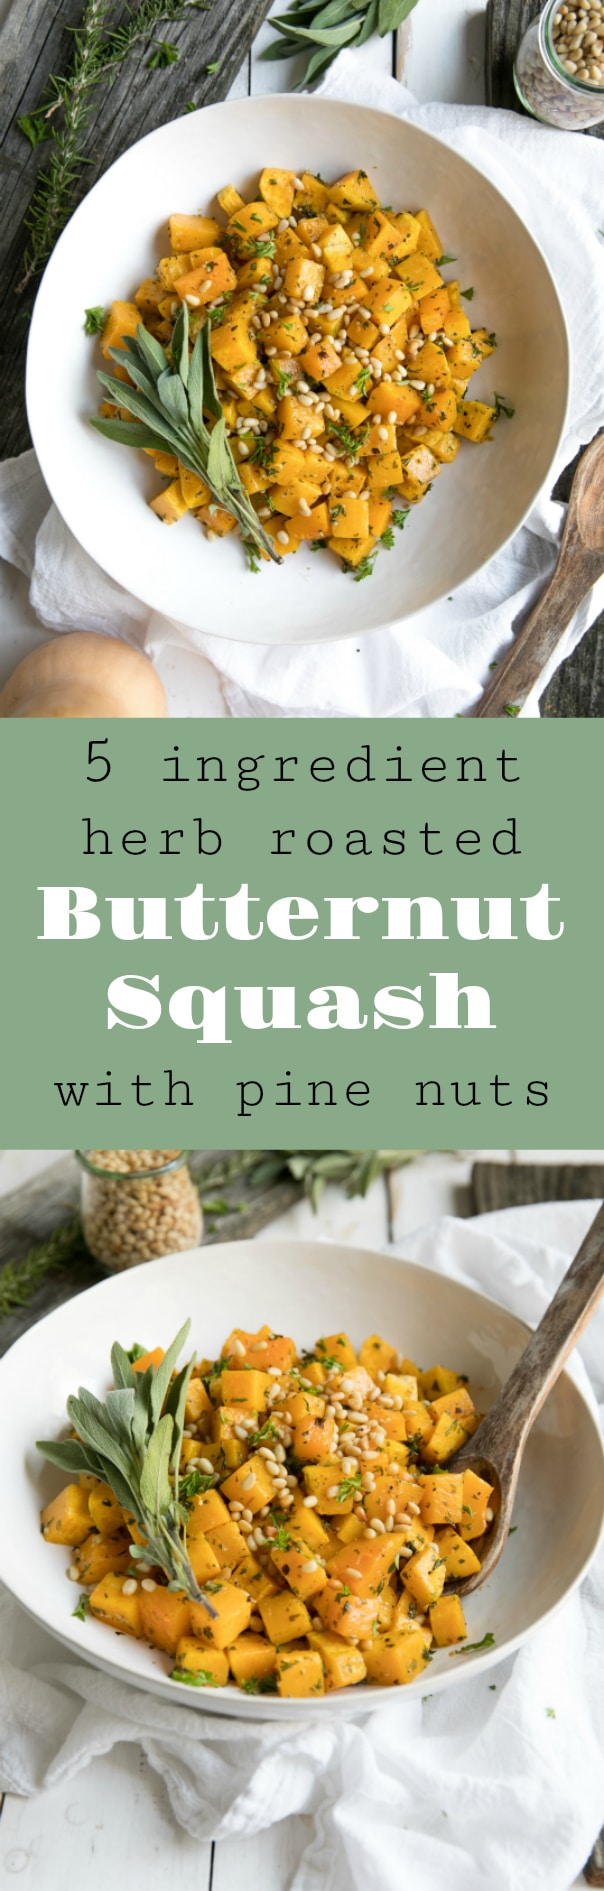 Easy 5 Ingredient Herb Roasted Butternut Squash with Pine Nuts via @theforkedspoon #butternutsquash #sides #siderecipes #vegetarian #easyrecipes #roastedvegetable | Find this and more recipes at theforkedspoon.com